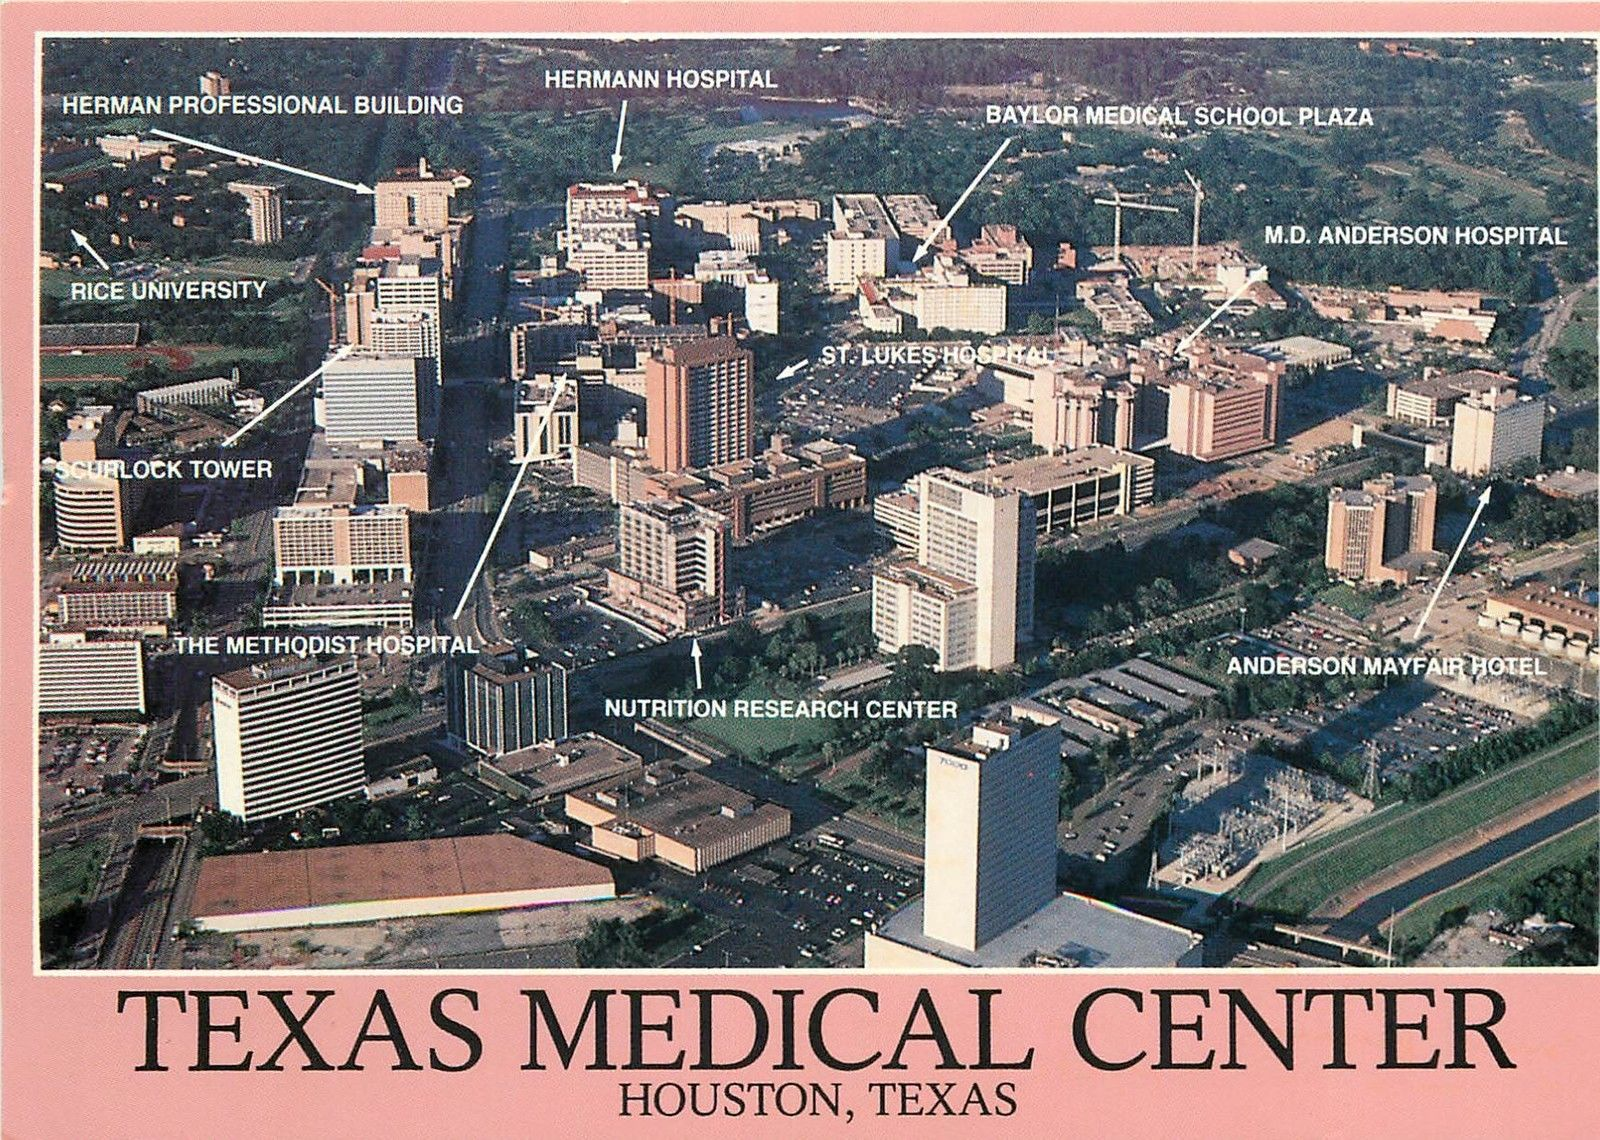 Texas Medical Center Houston United Stated aerial view schools